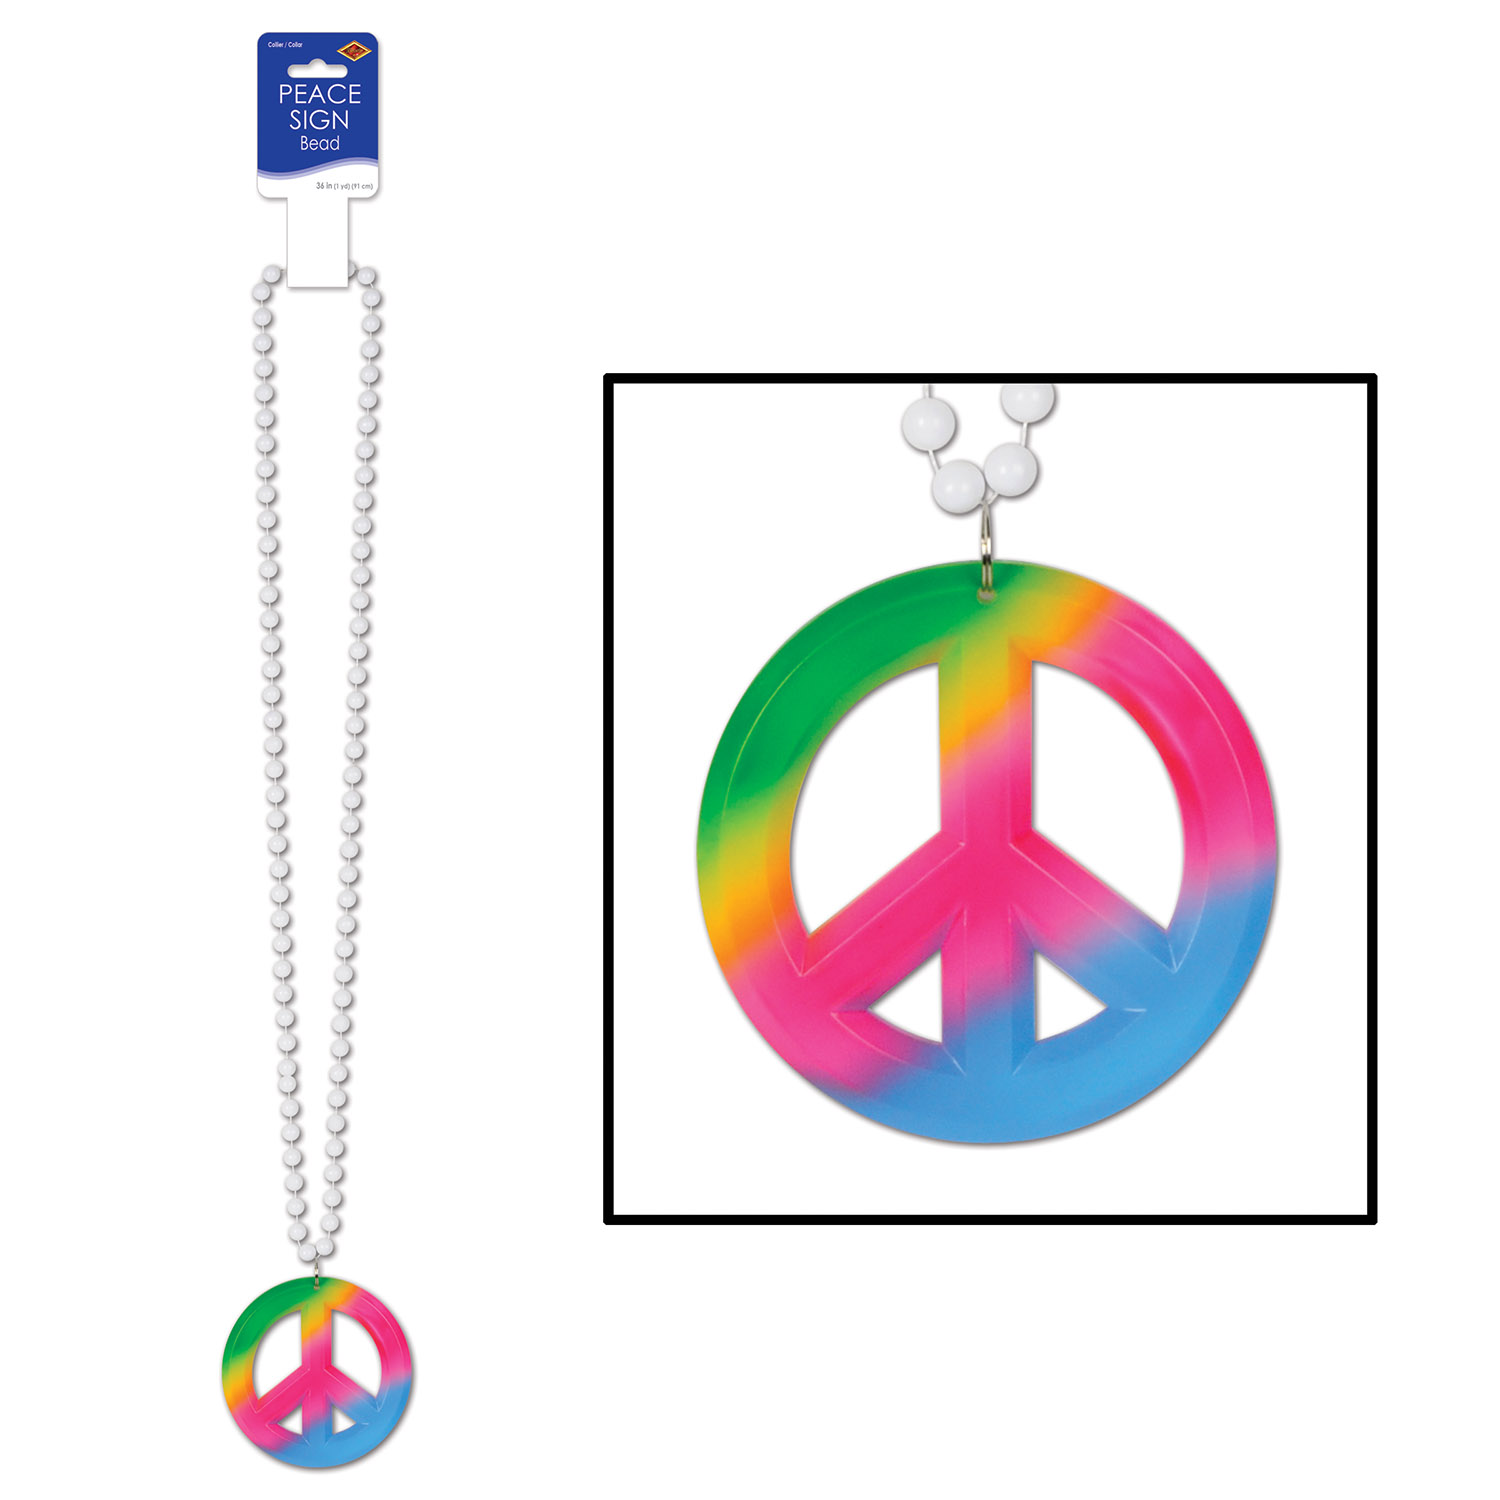 Beads with Tie-Dyed Peace Sign Medallion (Pack of 12) Tie-Dyed Peace Sign, Medallion beads, Peace Sign Medallion, Party Favor Beads, Bulk Beads, Wholesale beads, Cheap party favors, 1960s wearable, 1960s beads, hippie bead, tie-dye necklaces, retro party supplies